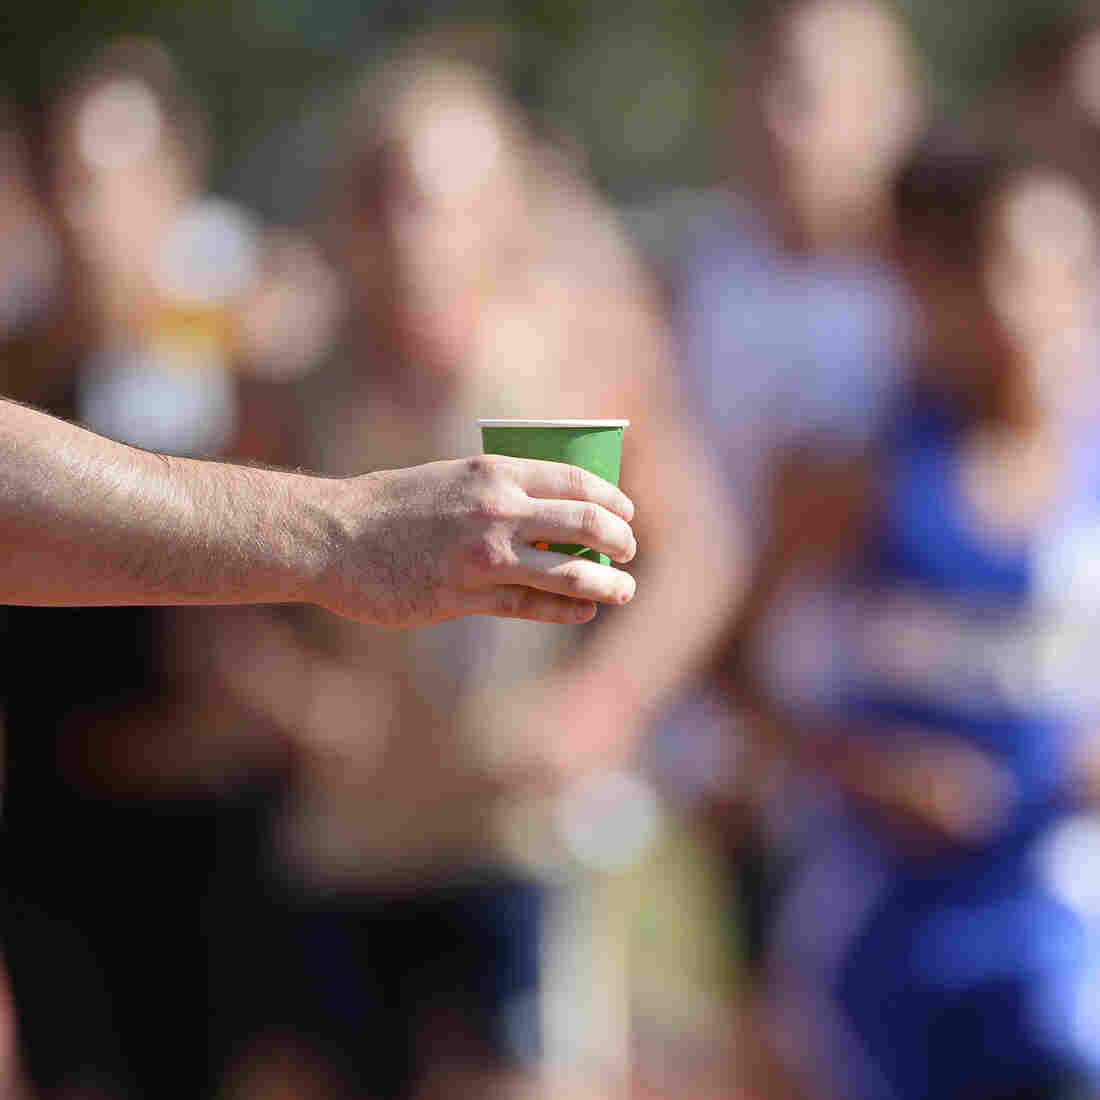 Running A Marathon? How To Eat and Drink So You Don't Hit The Wall